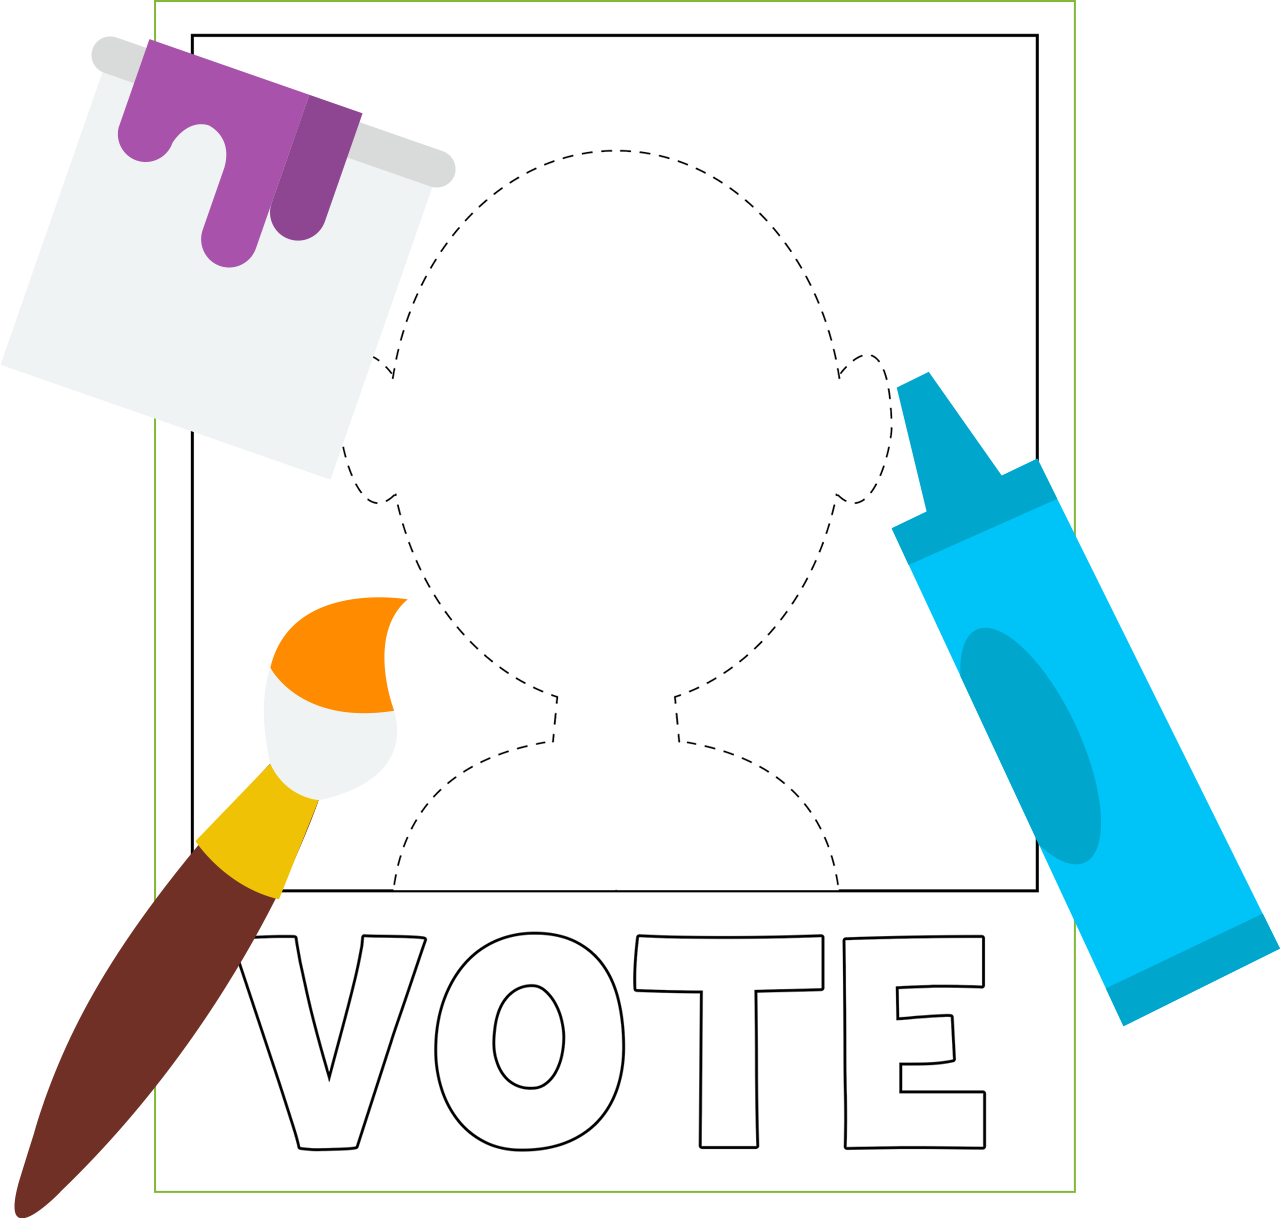 Voting clipart campaign poster. You choose pbs kids